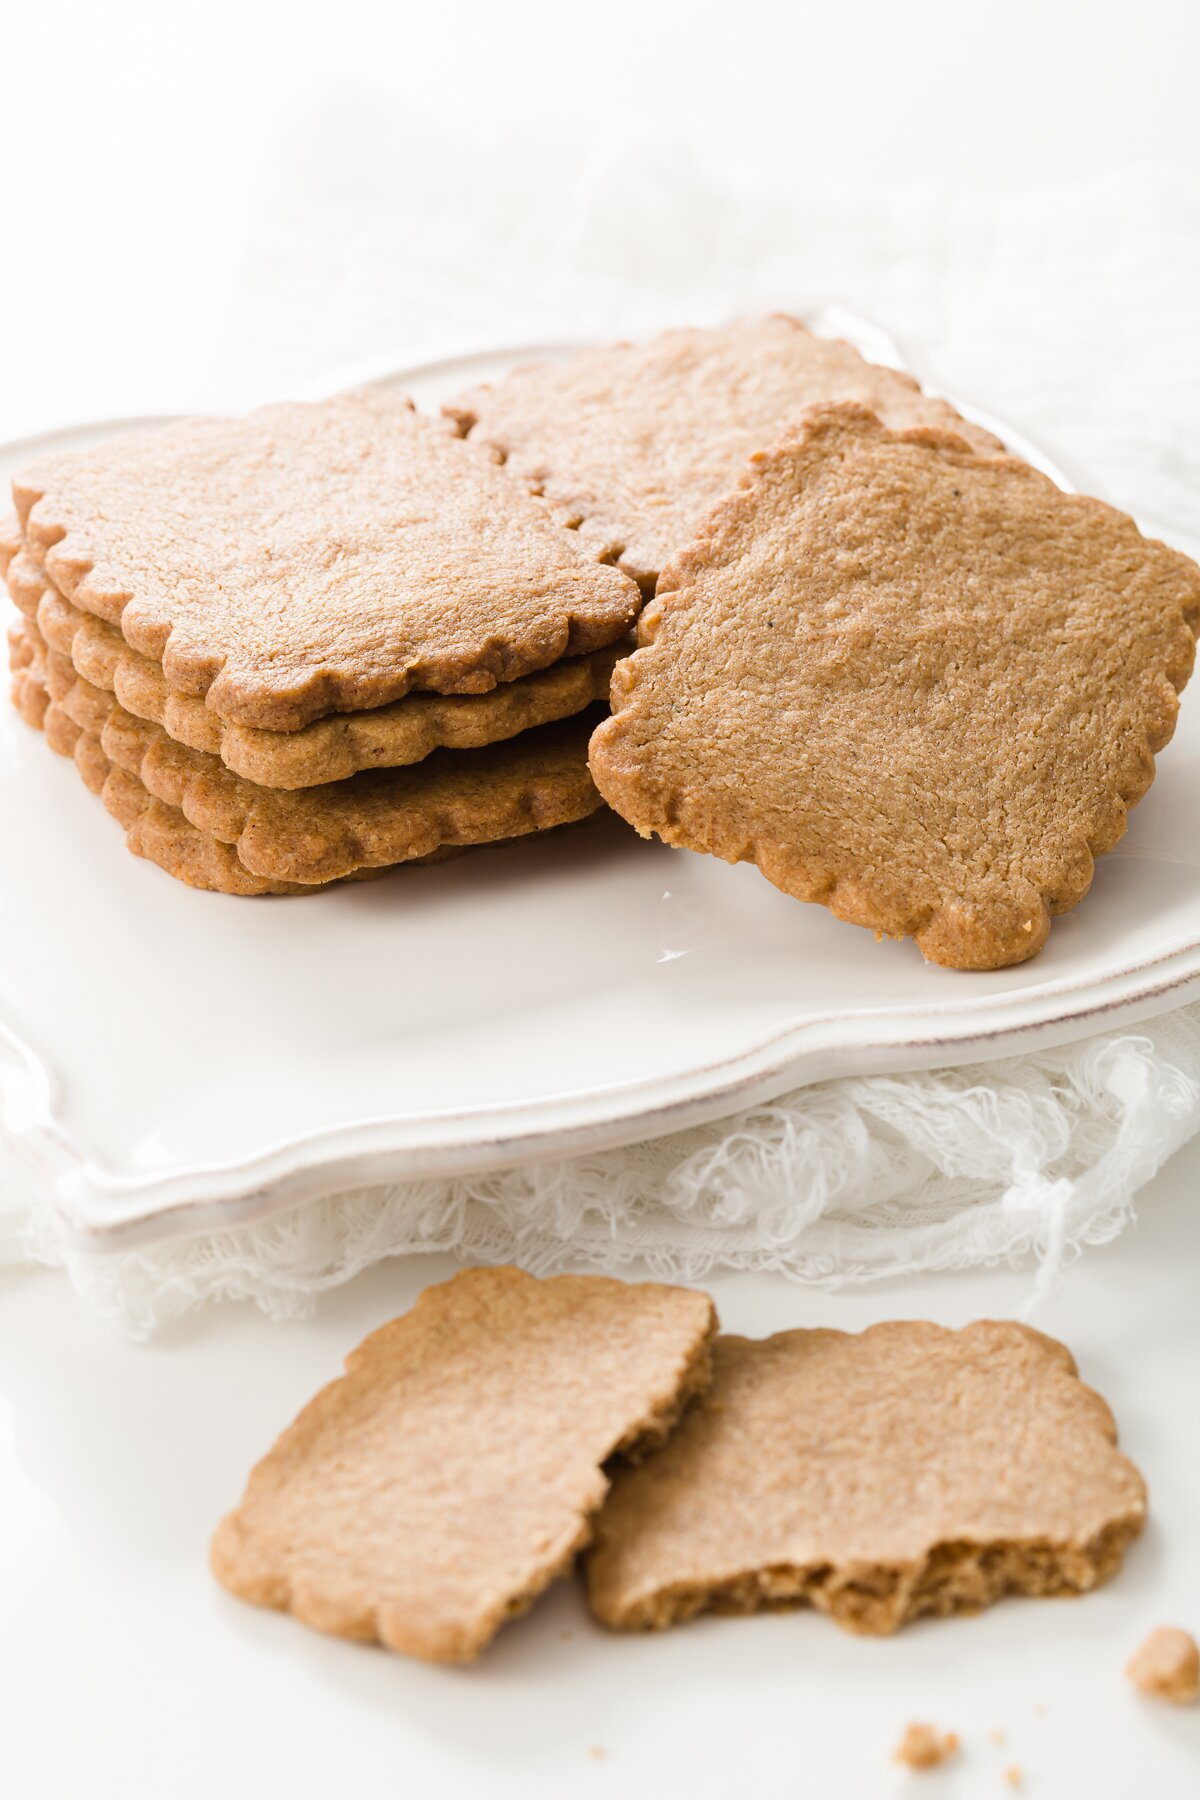 a pile of speculoos cookies on a white plate